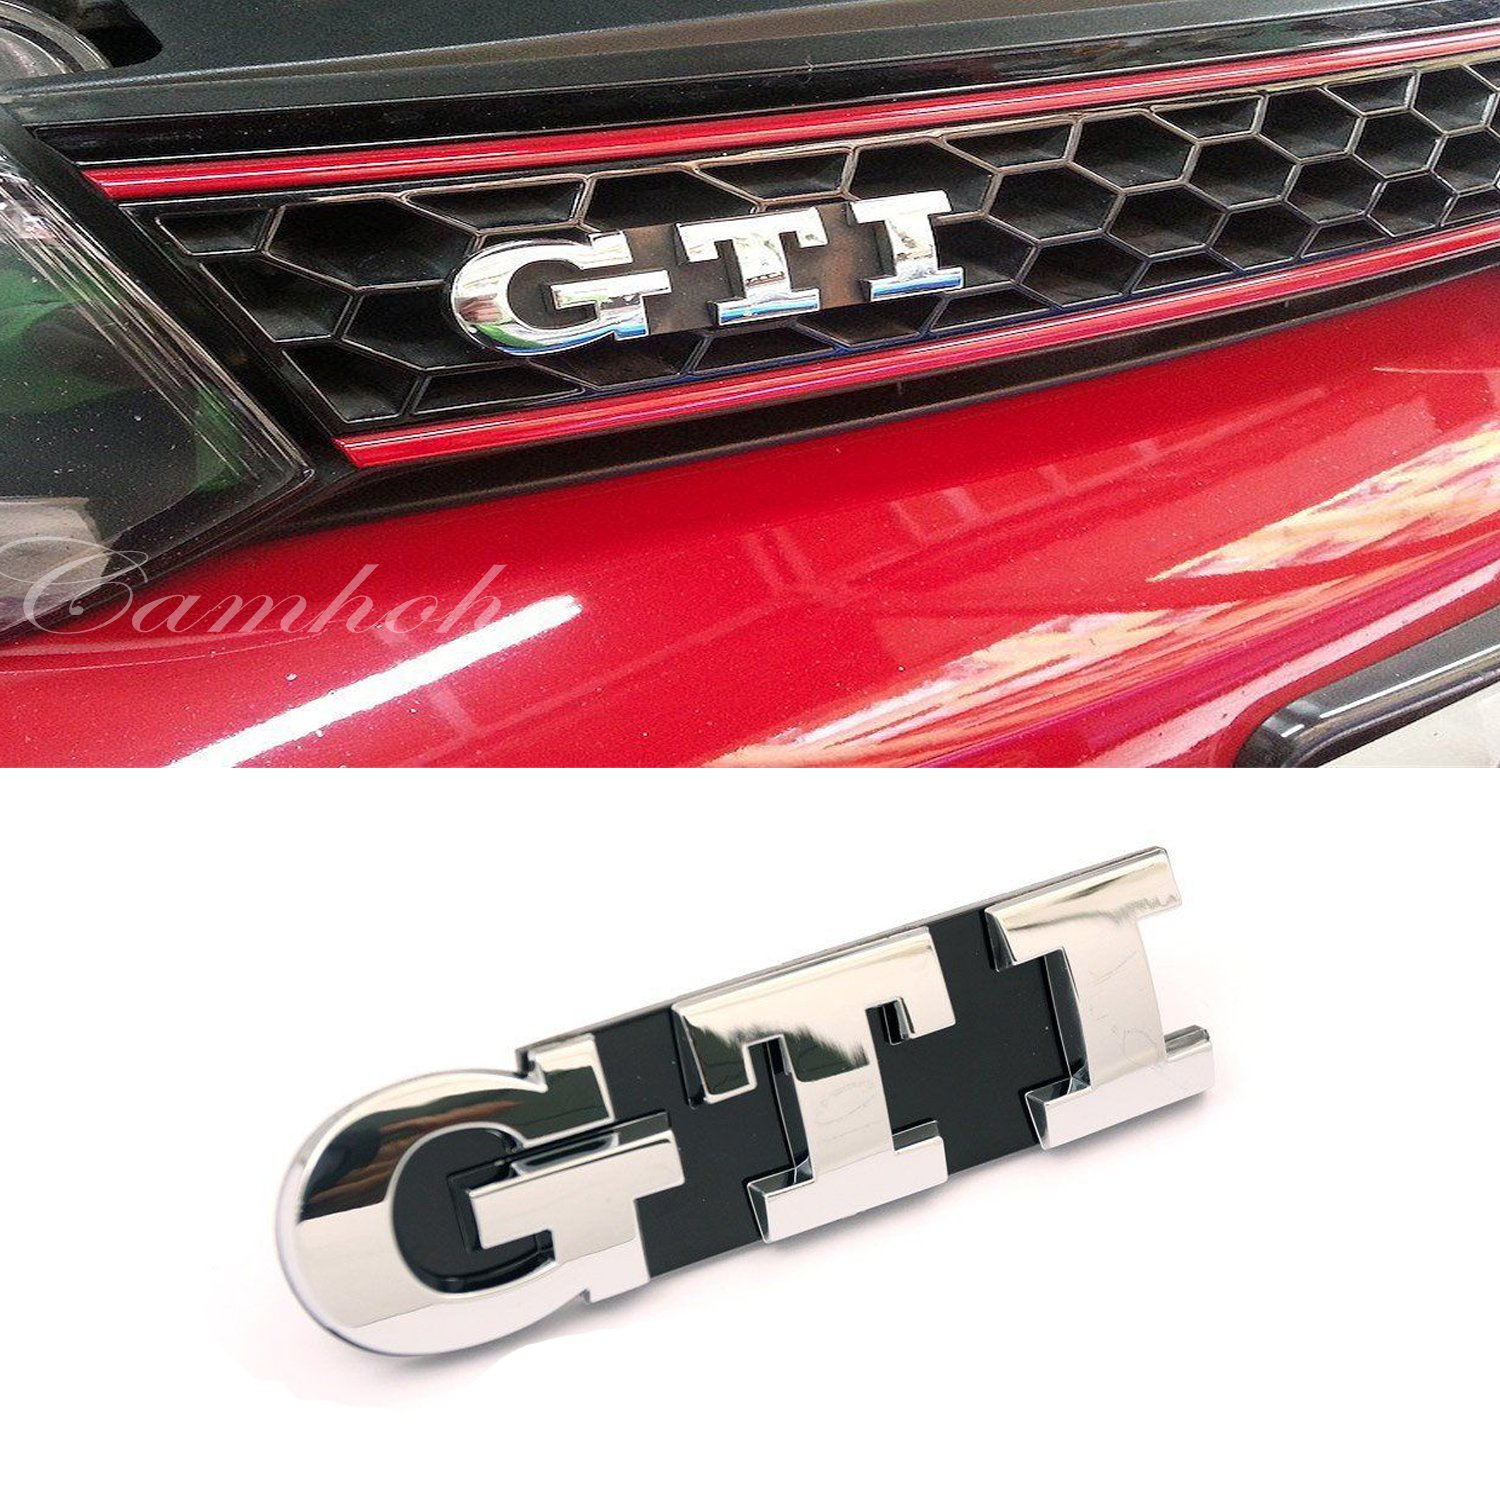 volkswagen vw golf 5 6 gti logo front grille emblem chrome. Black Bedroom Furniture Sets. Home Design Ideas